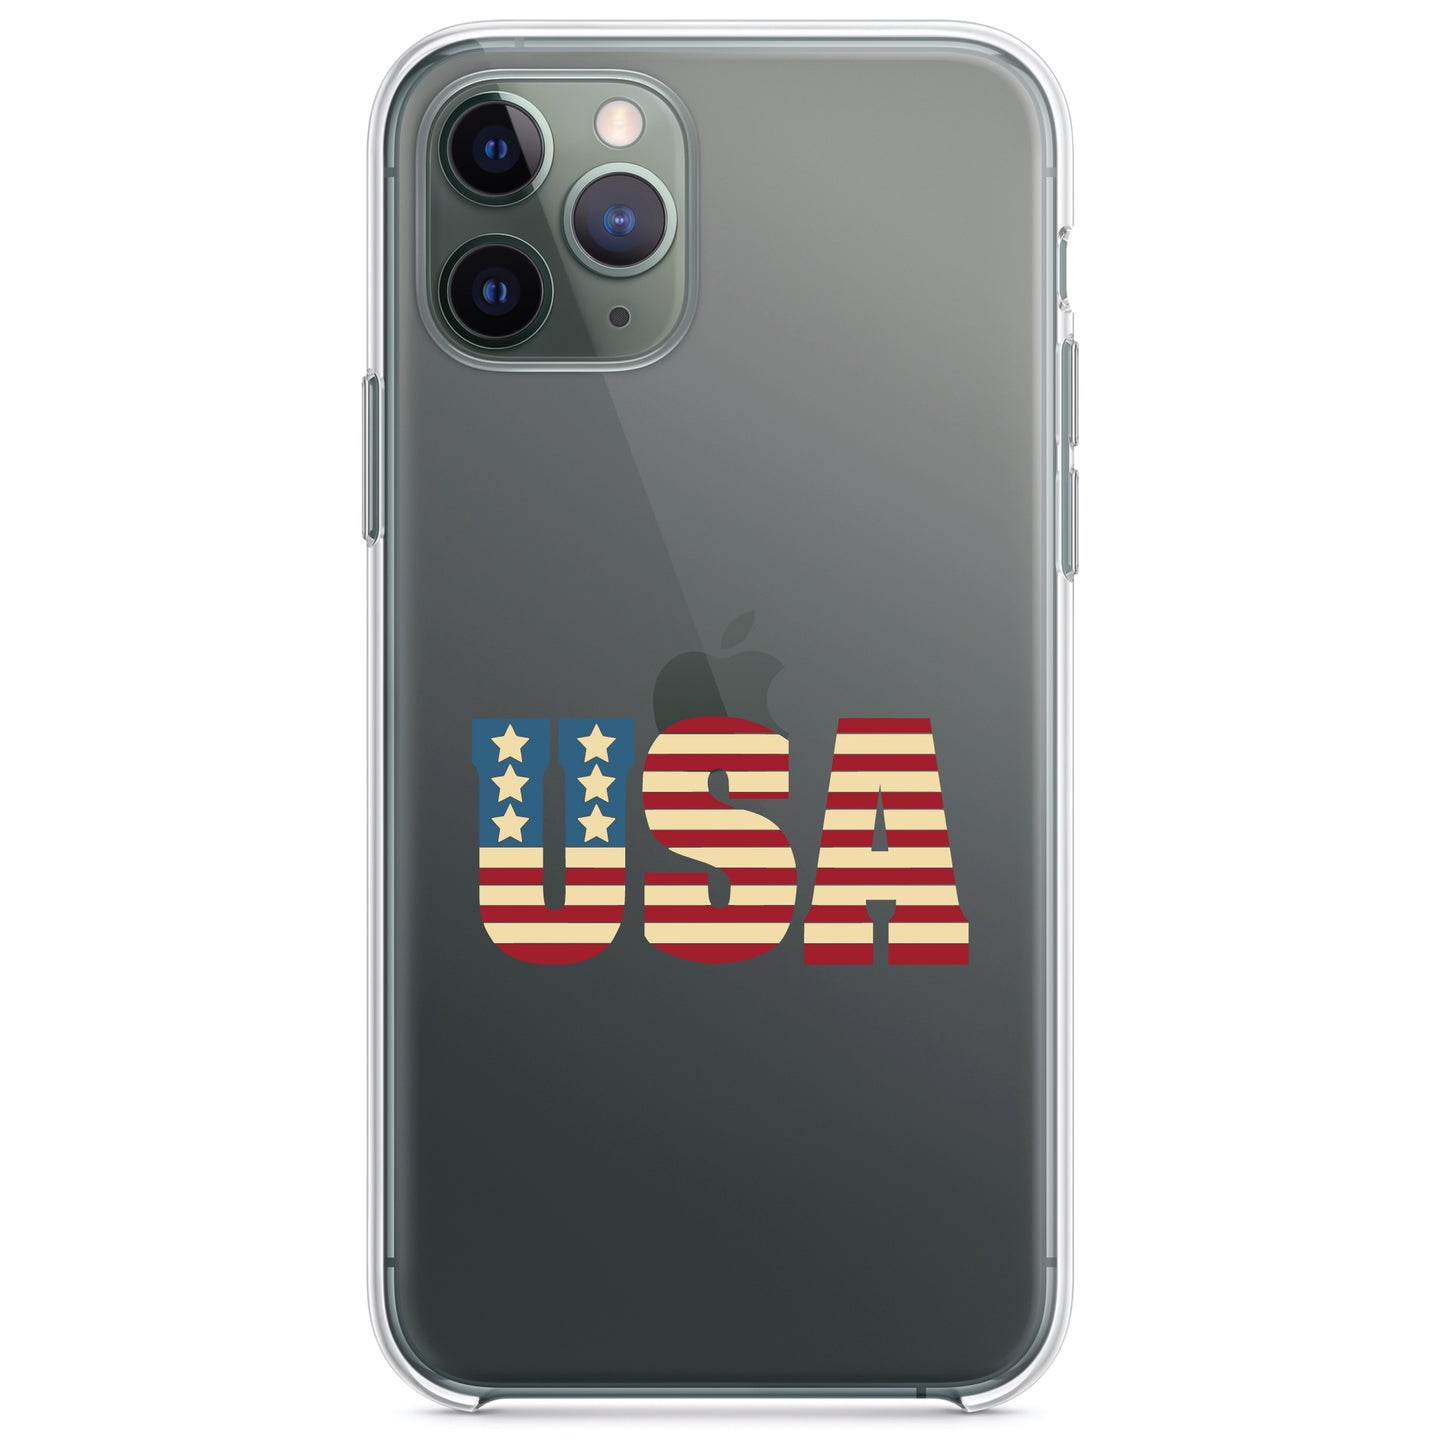 DistinctInk® Clear Shockproof Hybrid Case for Apple iPhone / Samsung Galaxy / Google Pixel - USA Letter Art Flag Red White & Blue